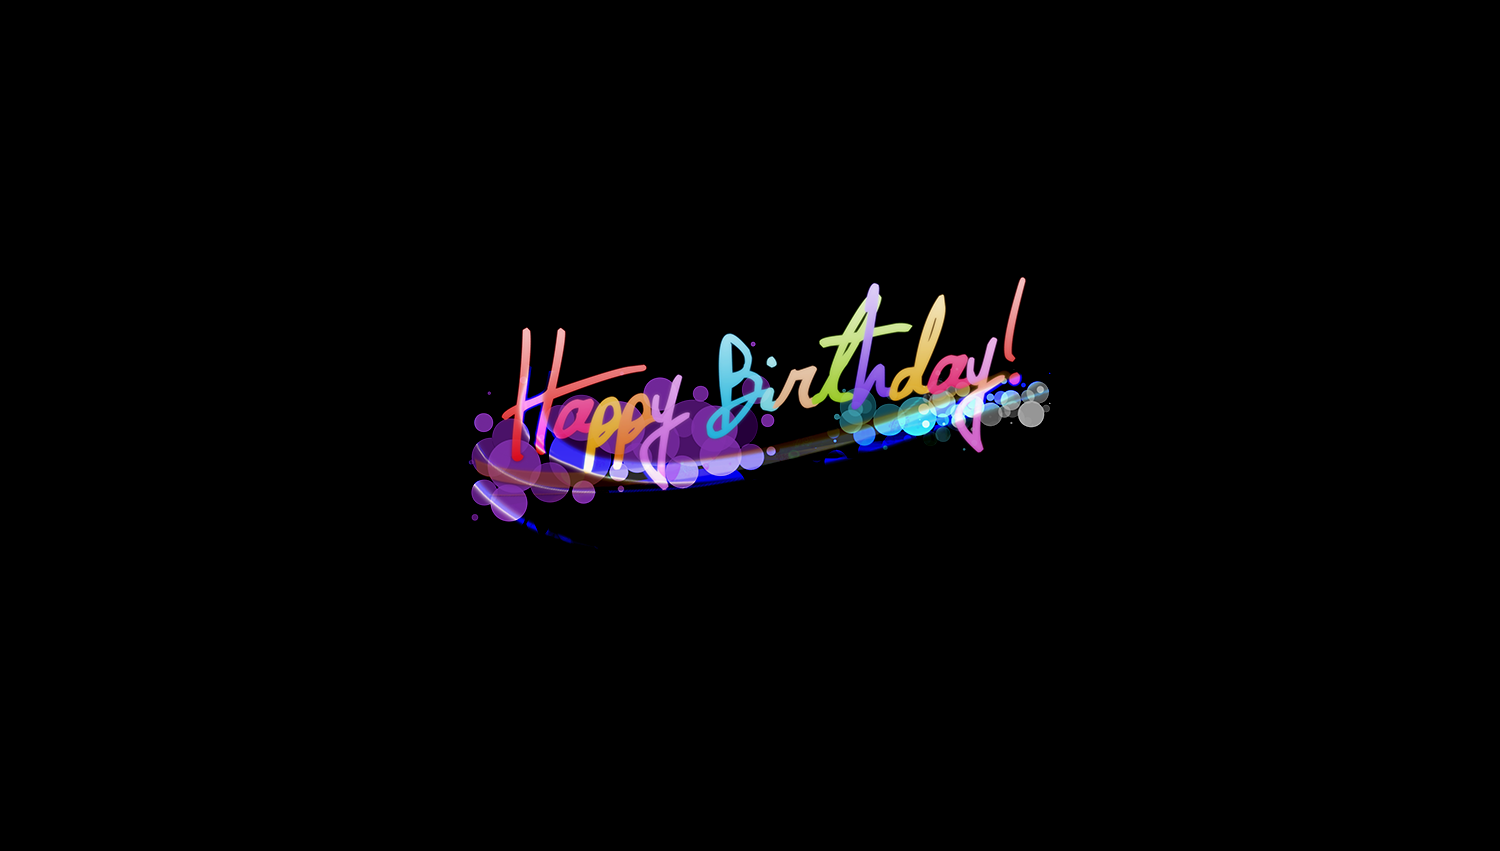 Hd wallpaper birthday - Happy Birthday Wallpapers One Hd Wallpaper Pictures Backgrounds